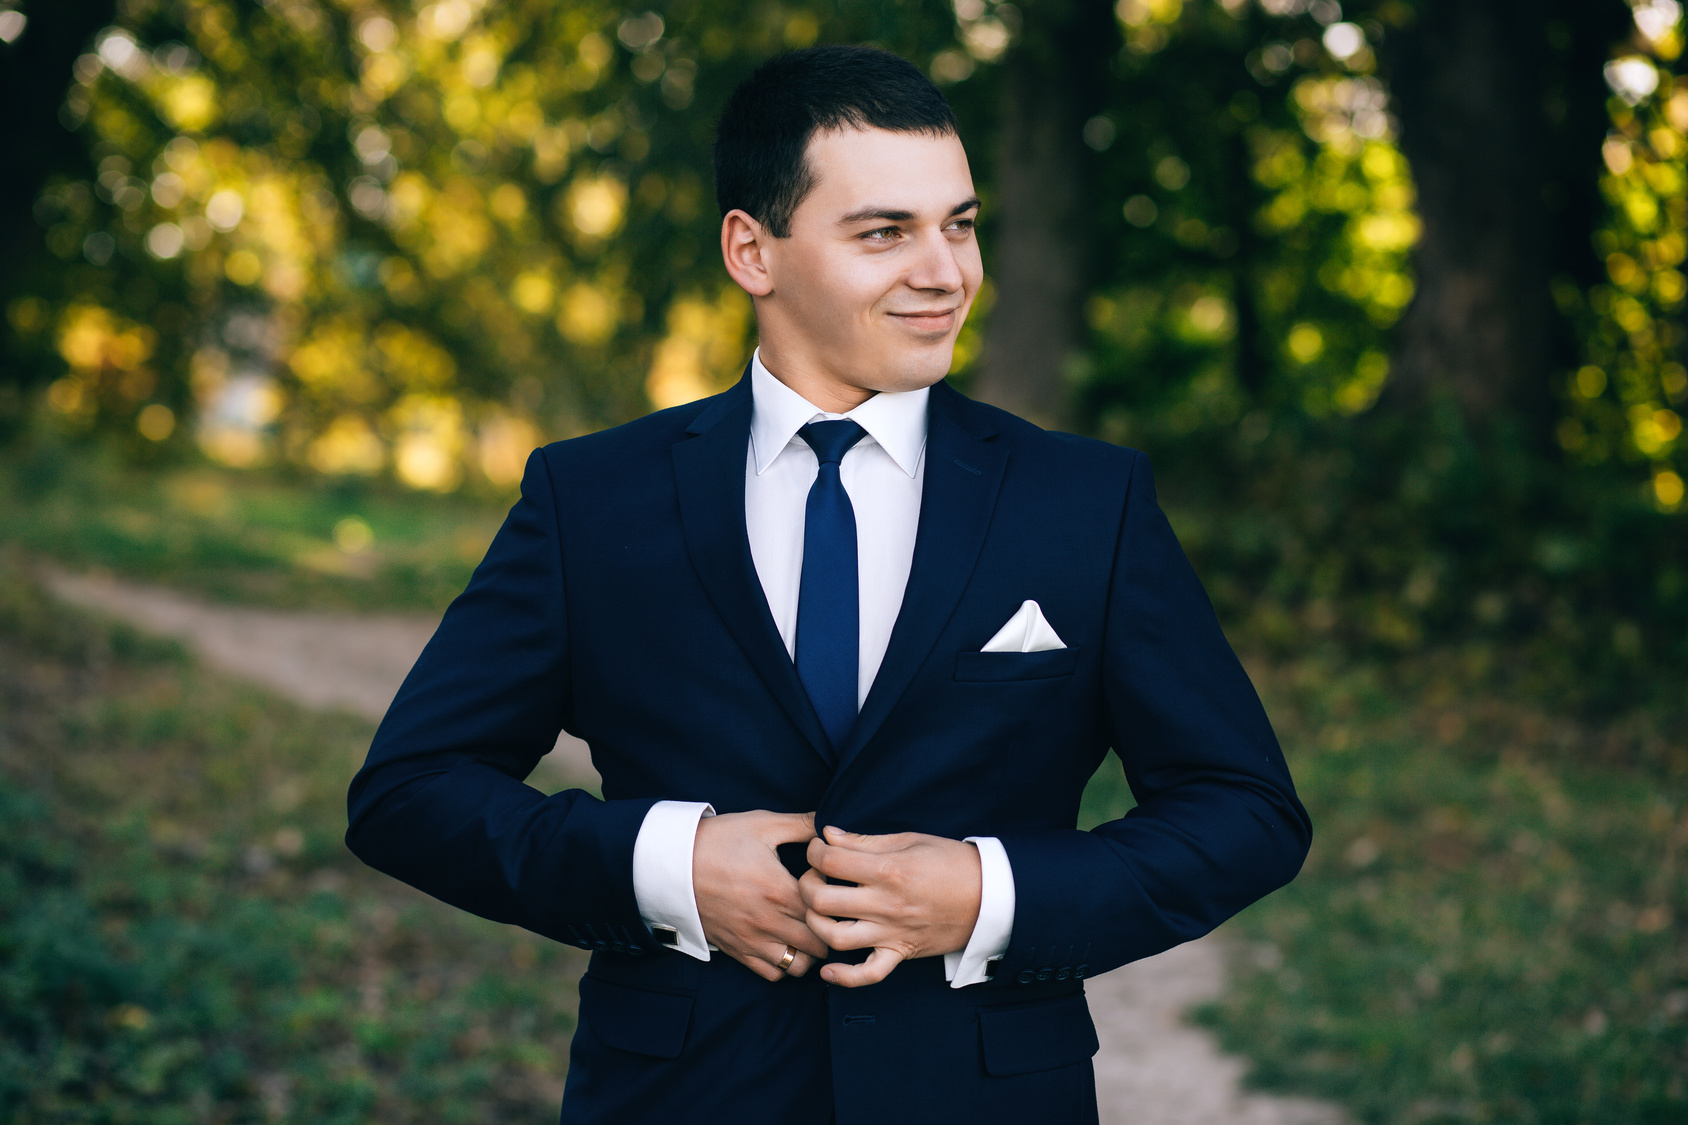 confident, cute groom man in a stylish business suit, outdoors, autumn. Portrait of the groom in the park on their wedding day. Rich groom man on their wedding day